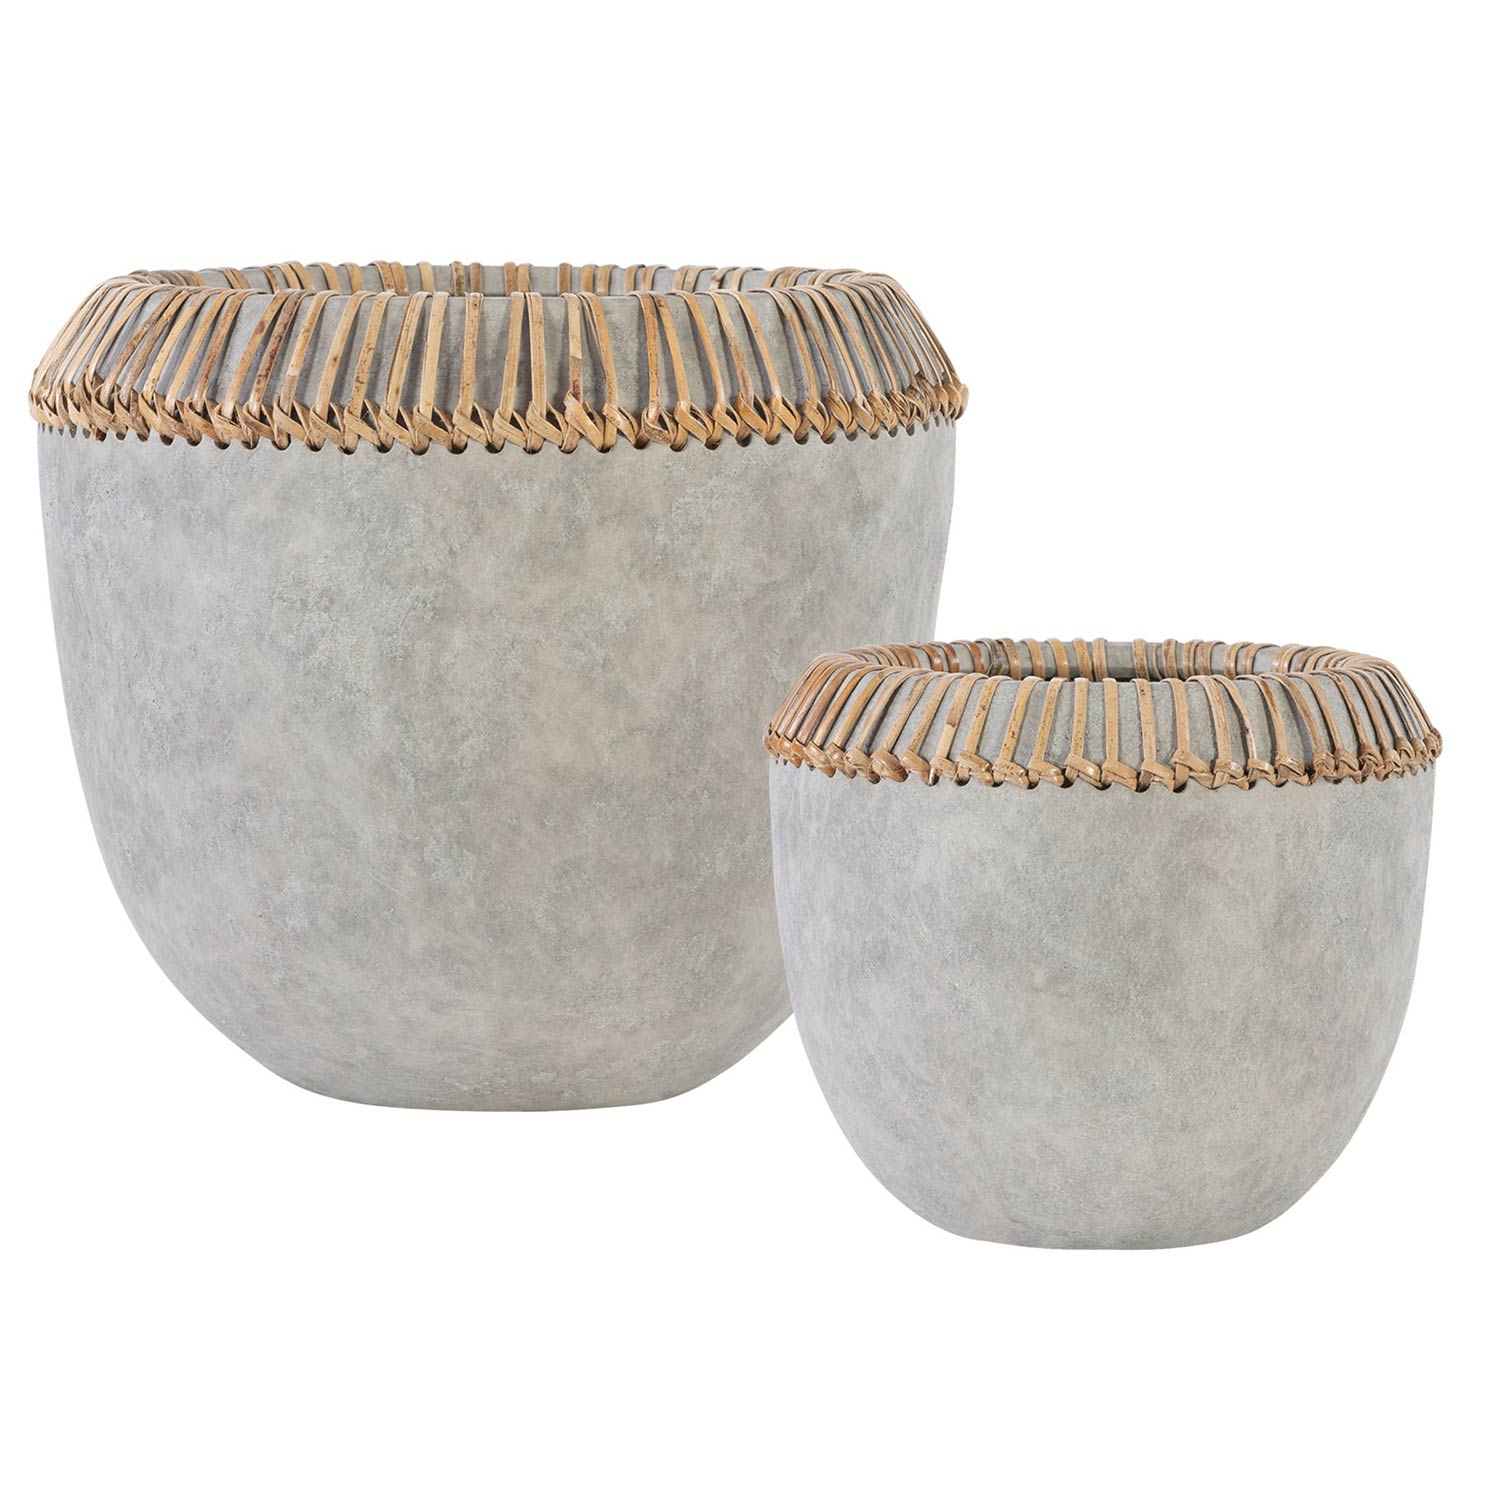 Aponi Concrete Ray Bowls - Set of 2